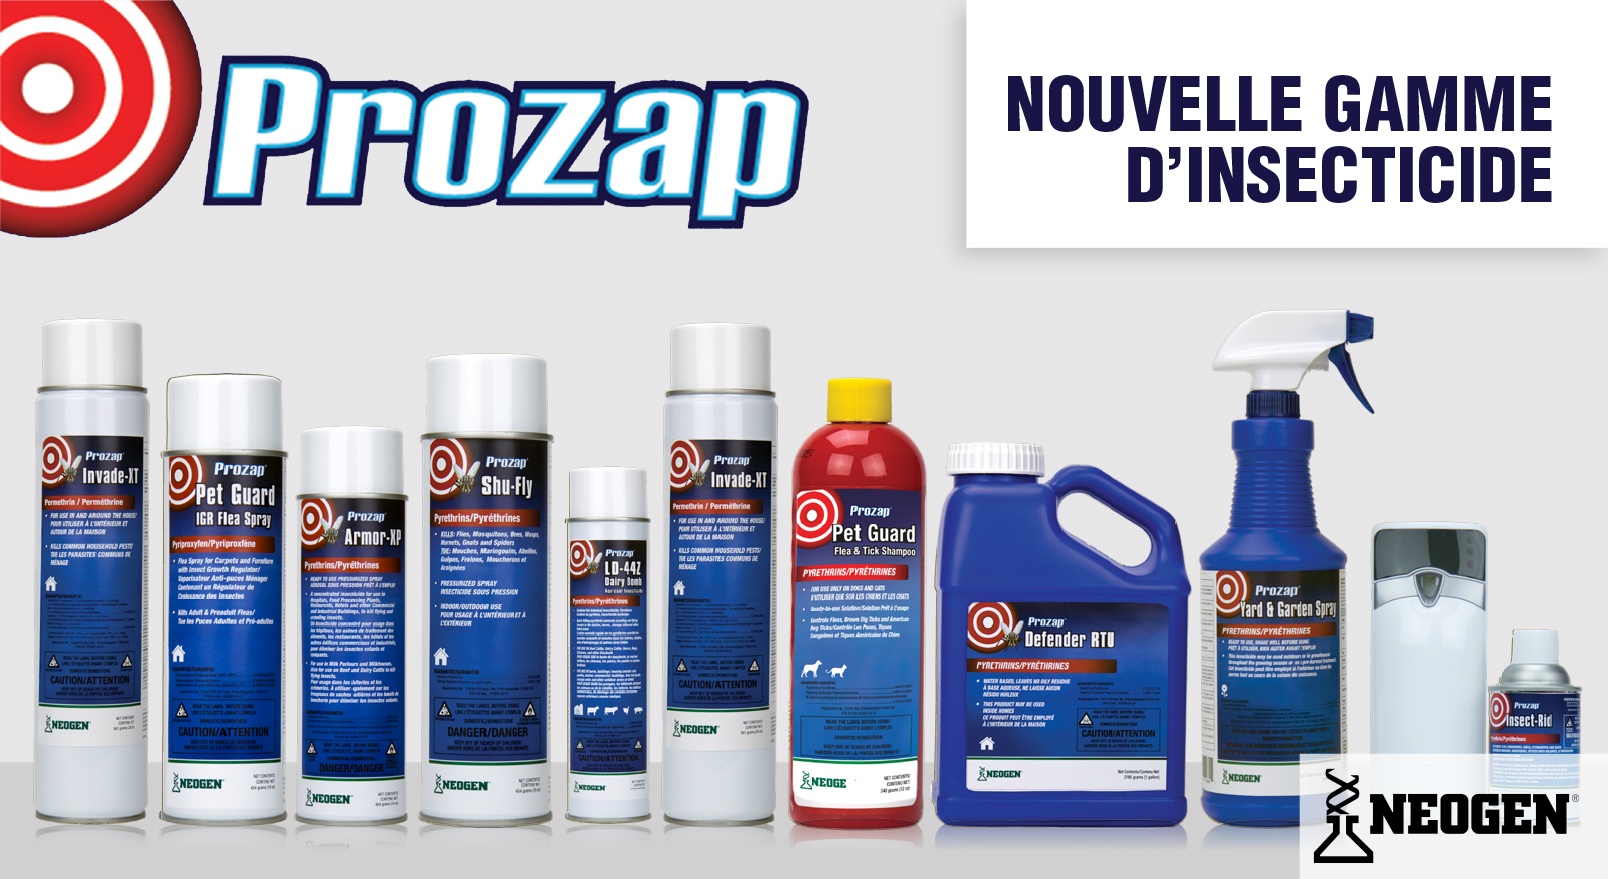 Gamme d'insecticide PROZAP